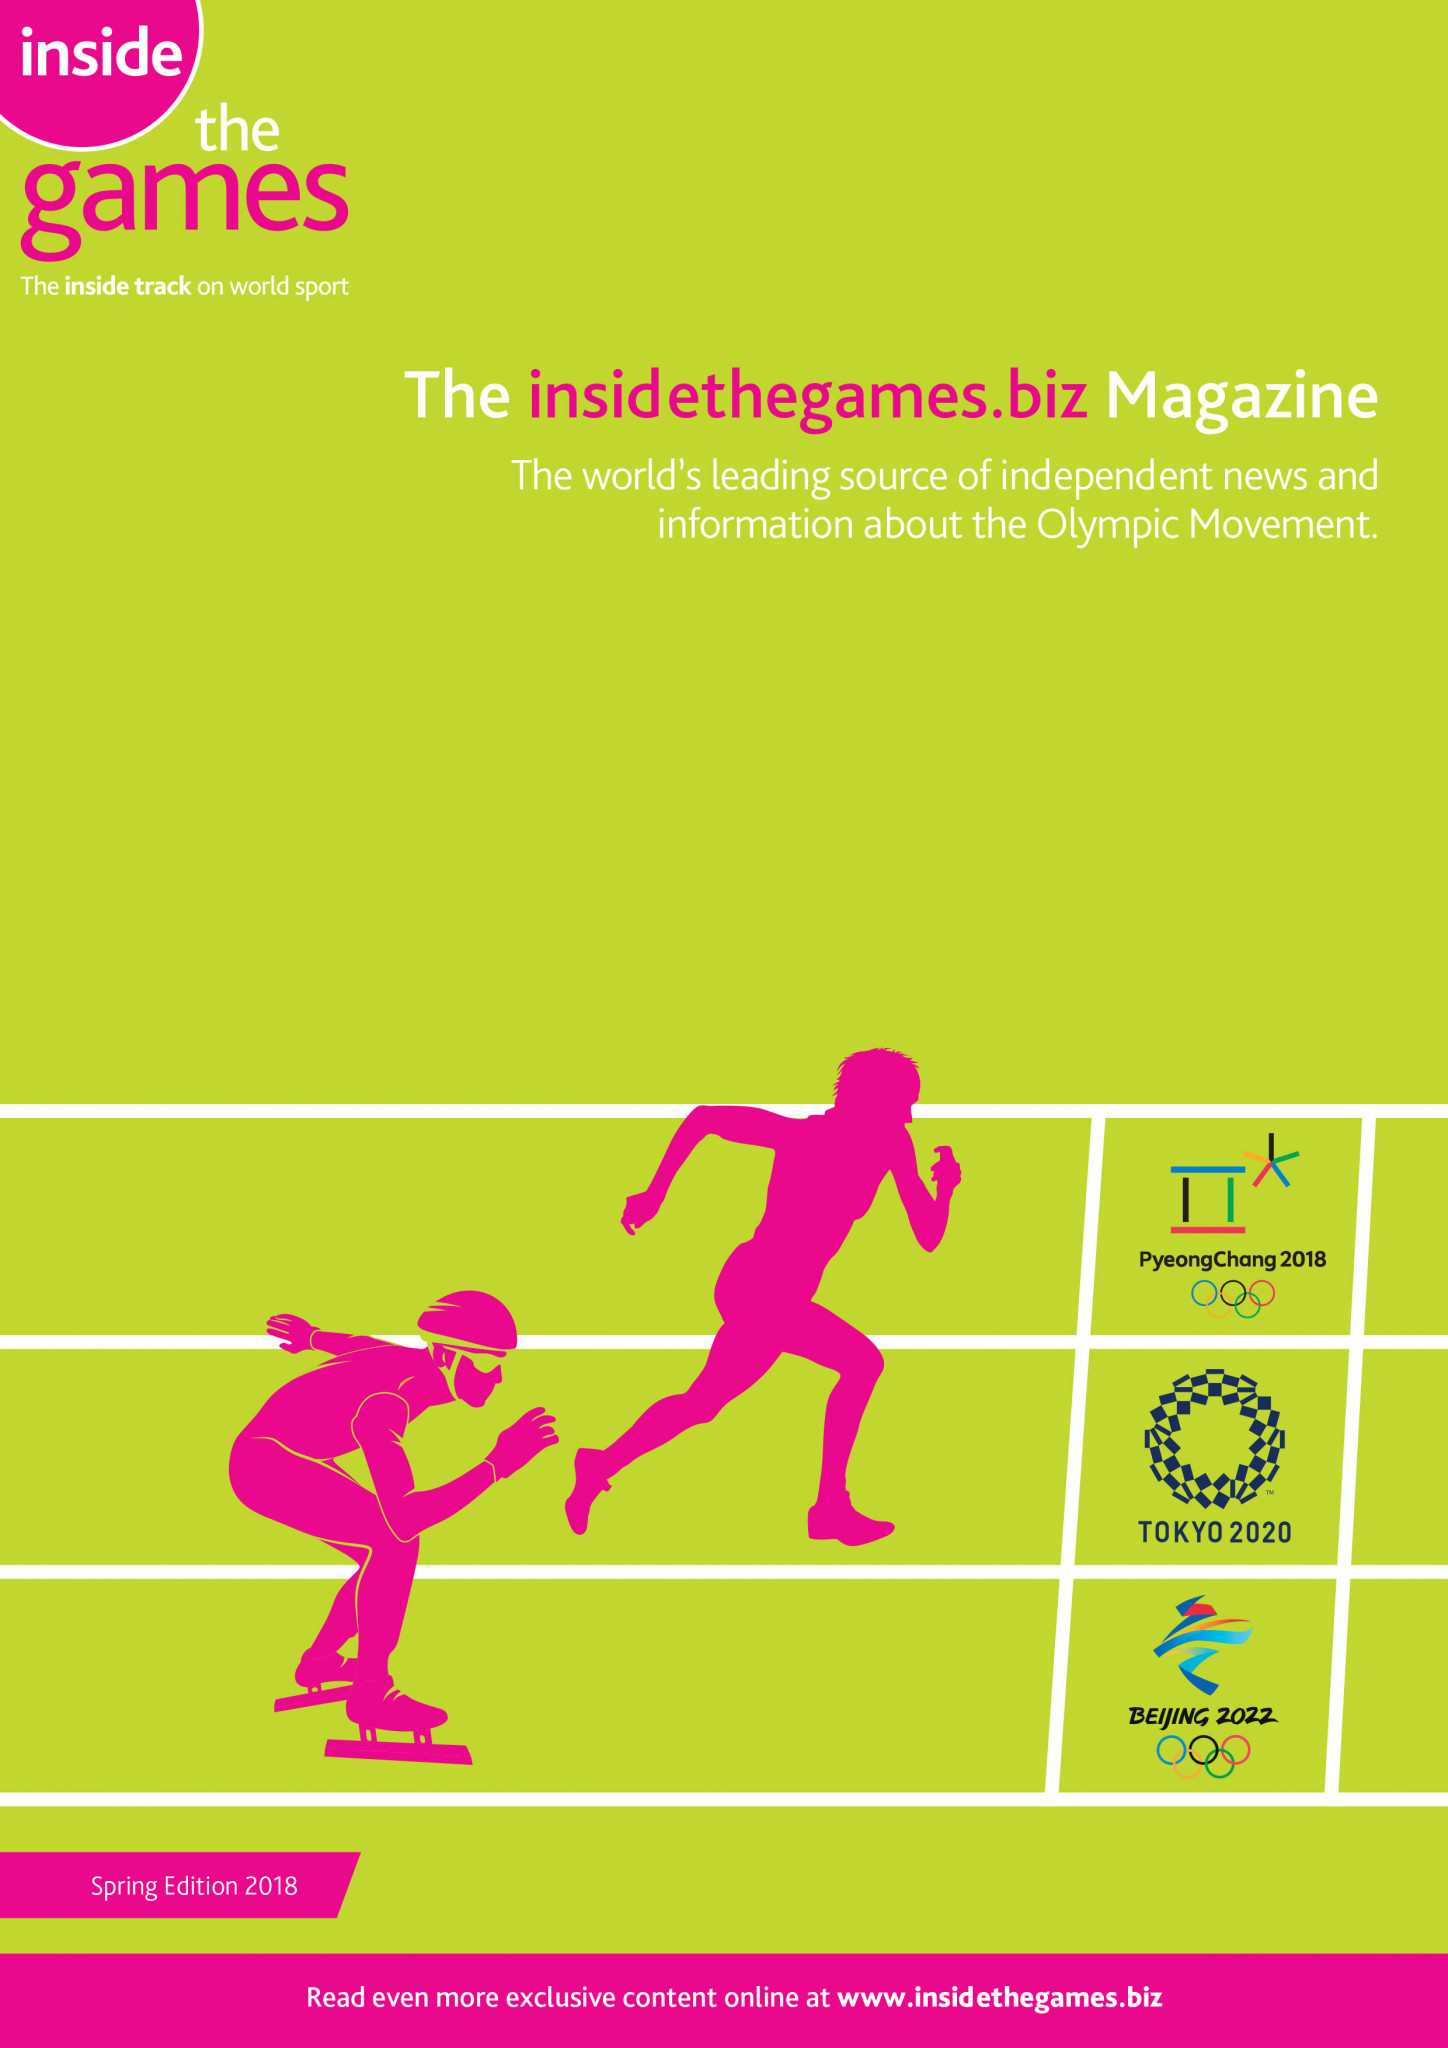 The insidethegames.biz Magazine Spring Edition 2018